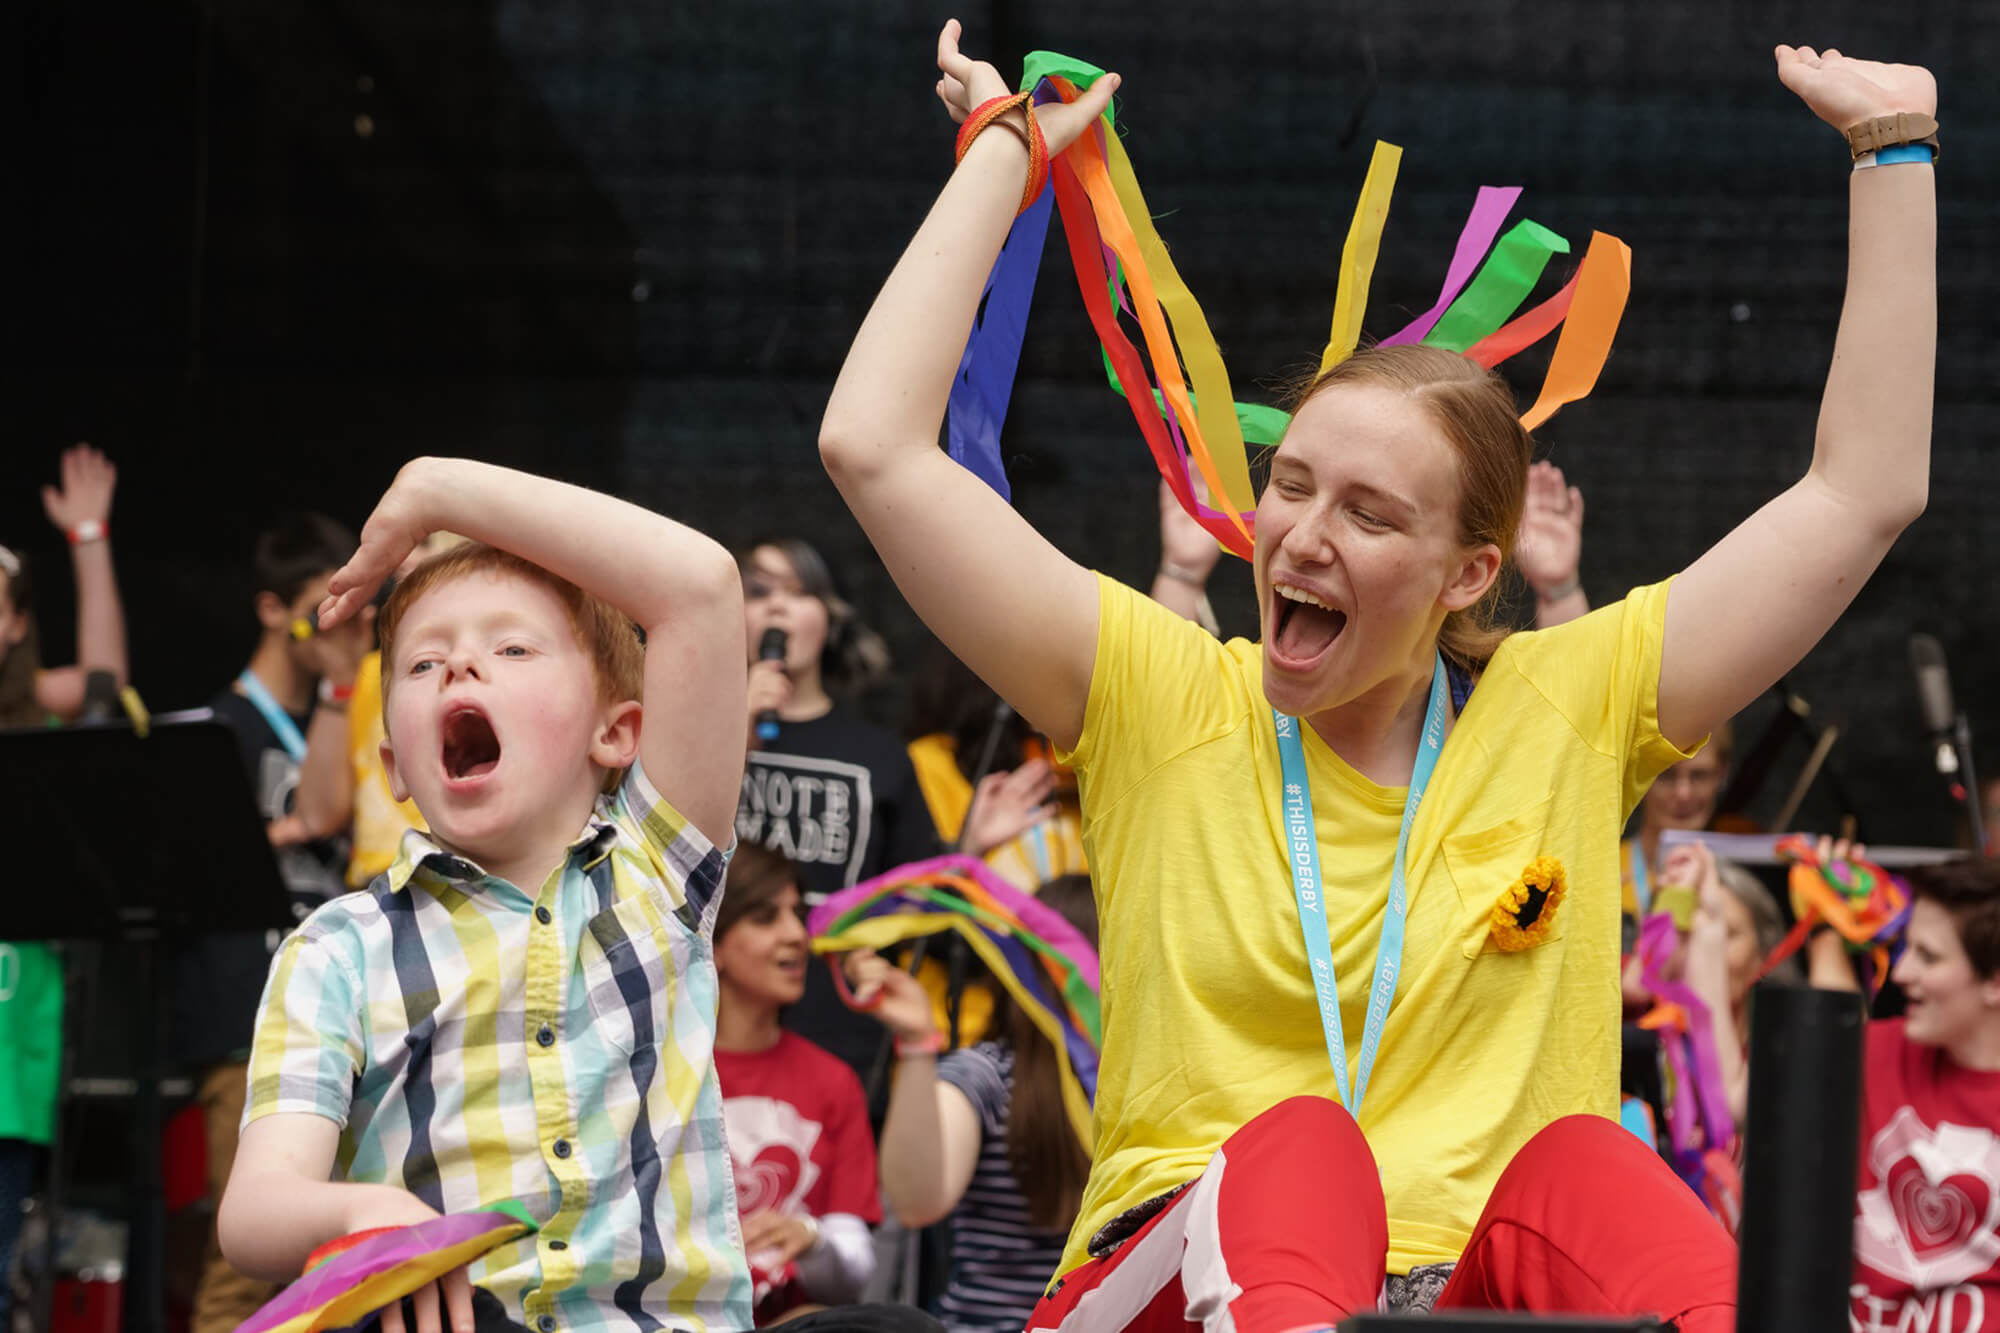 A young boy in a checked shirt raises his arm above his head whilst a lady sitting next to him in a bright yellow t shirt raises her arms that are holding ribbon streamers as she cheers